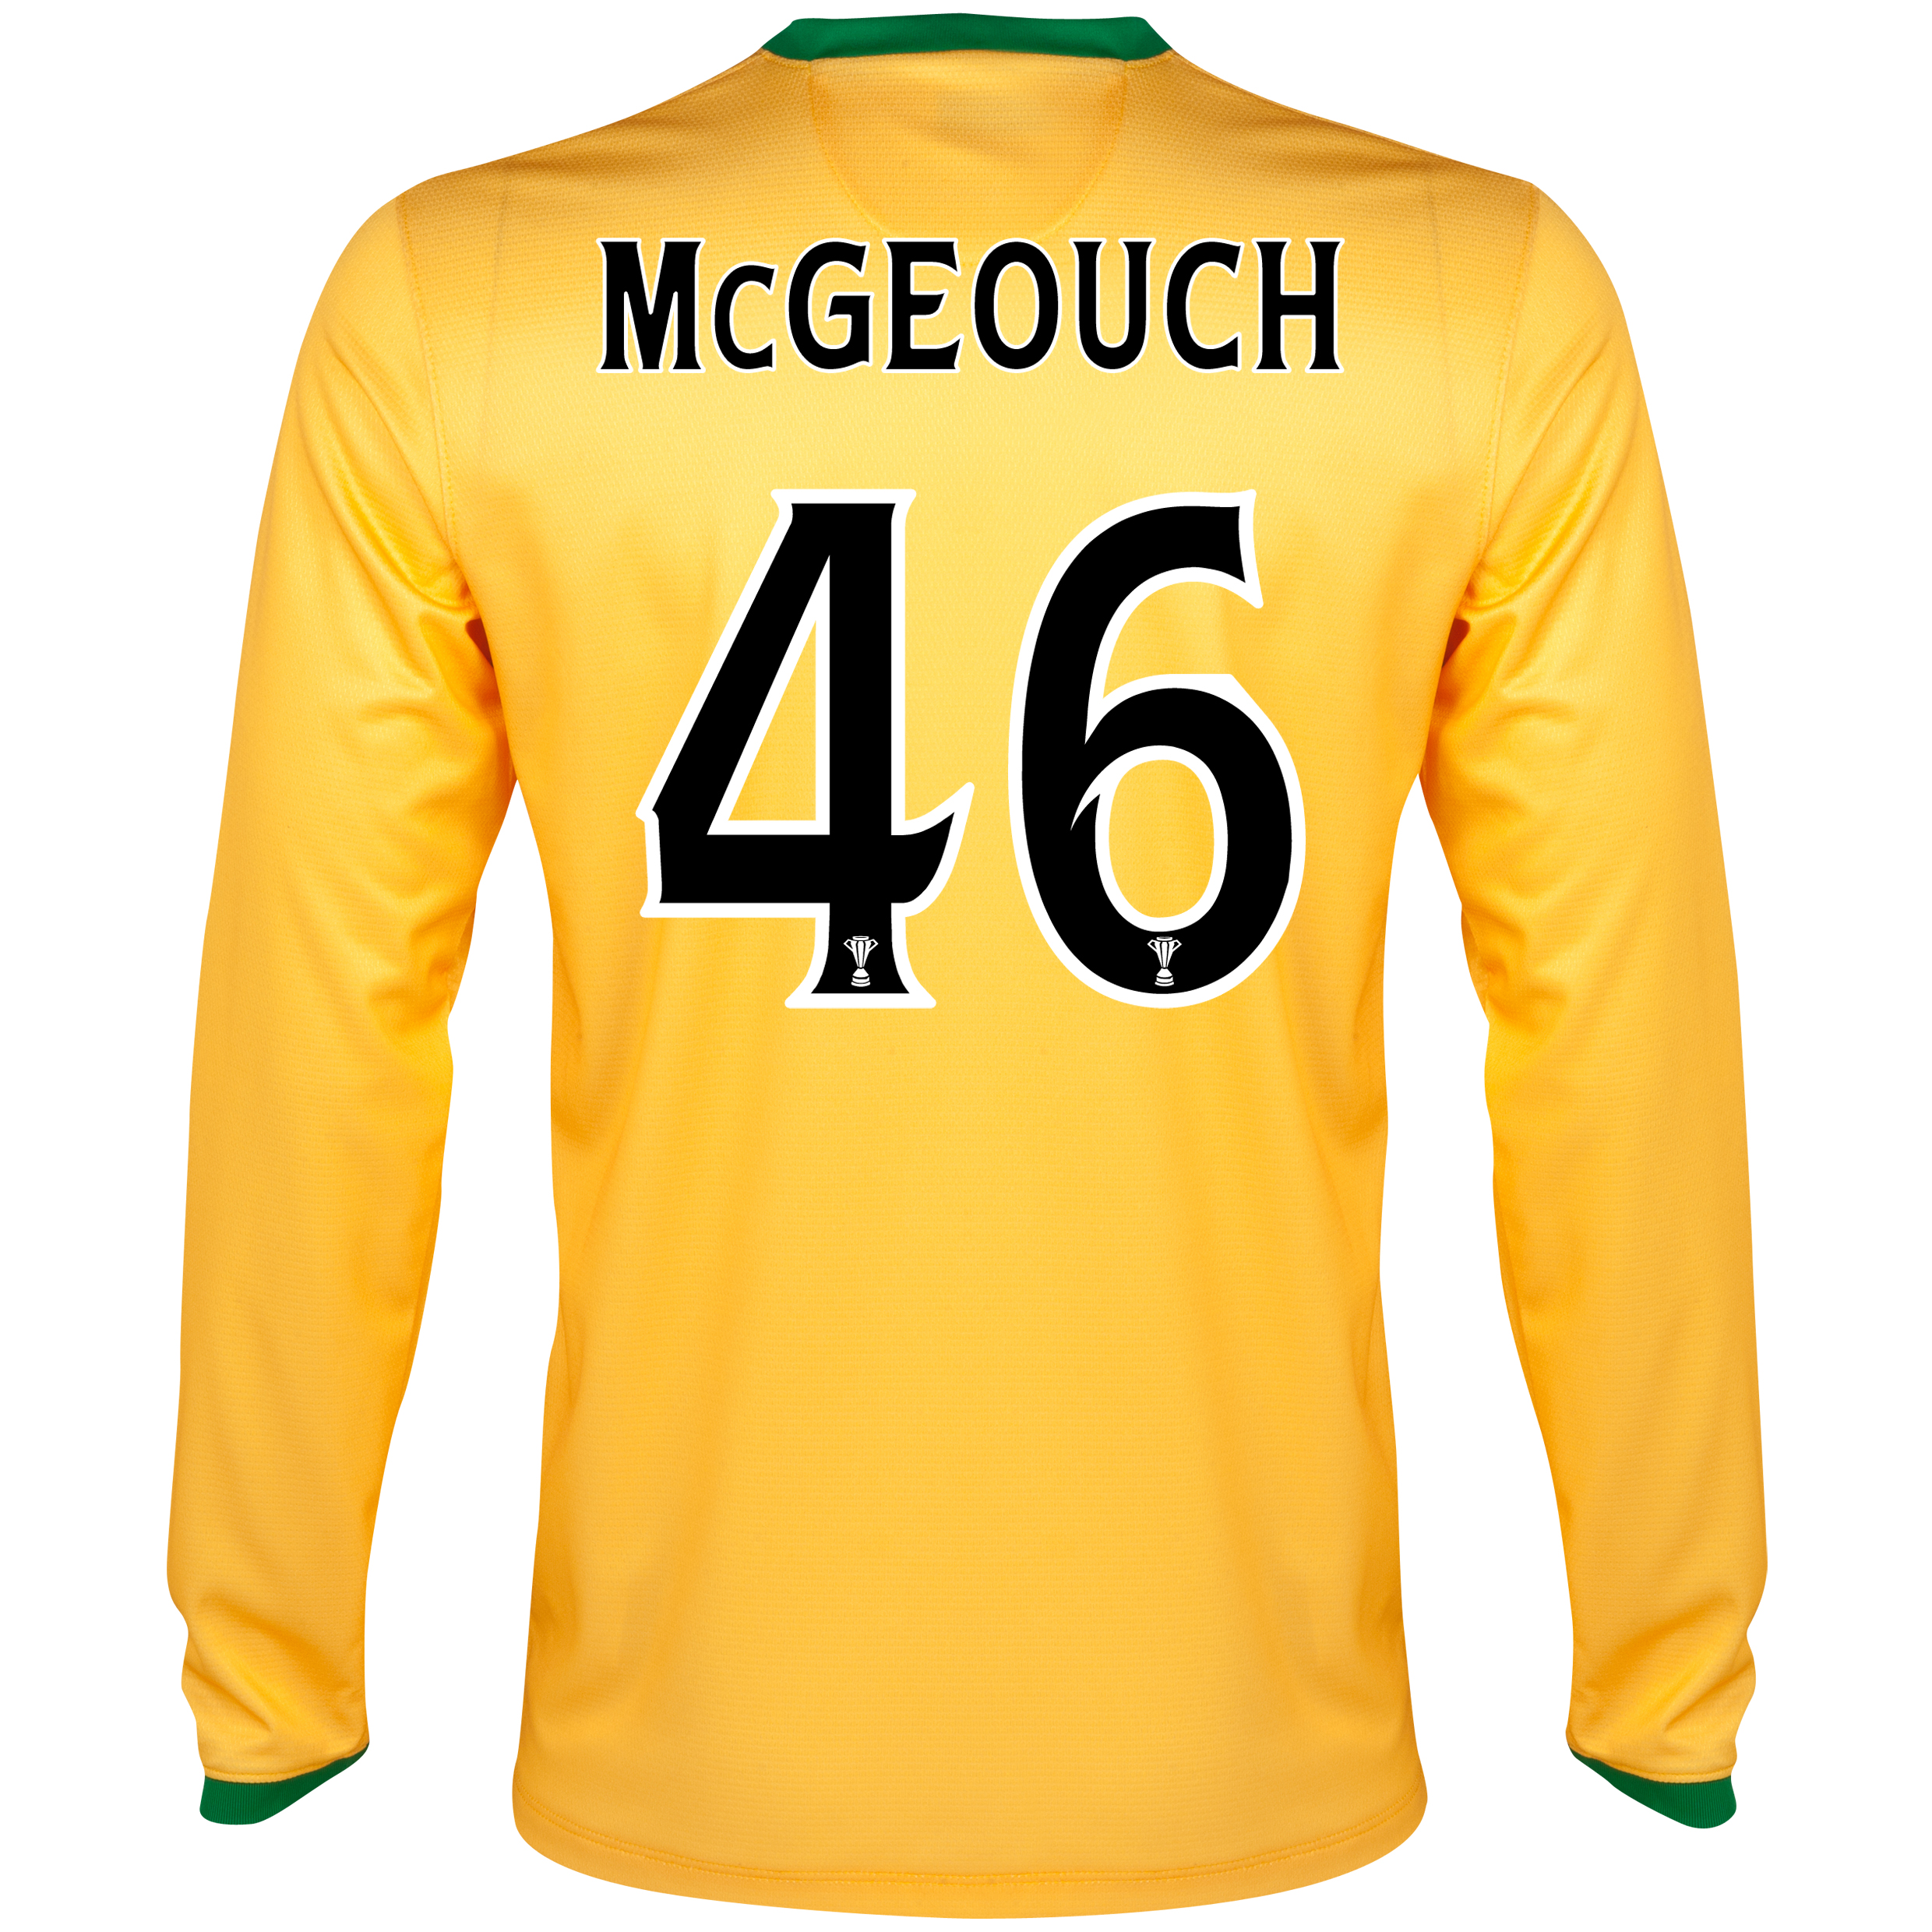 Celtic Away Shirt 2013/14 - L/S- Unsponsored with McGeouch  46 printing